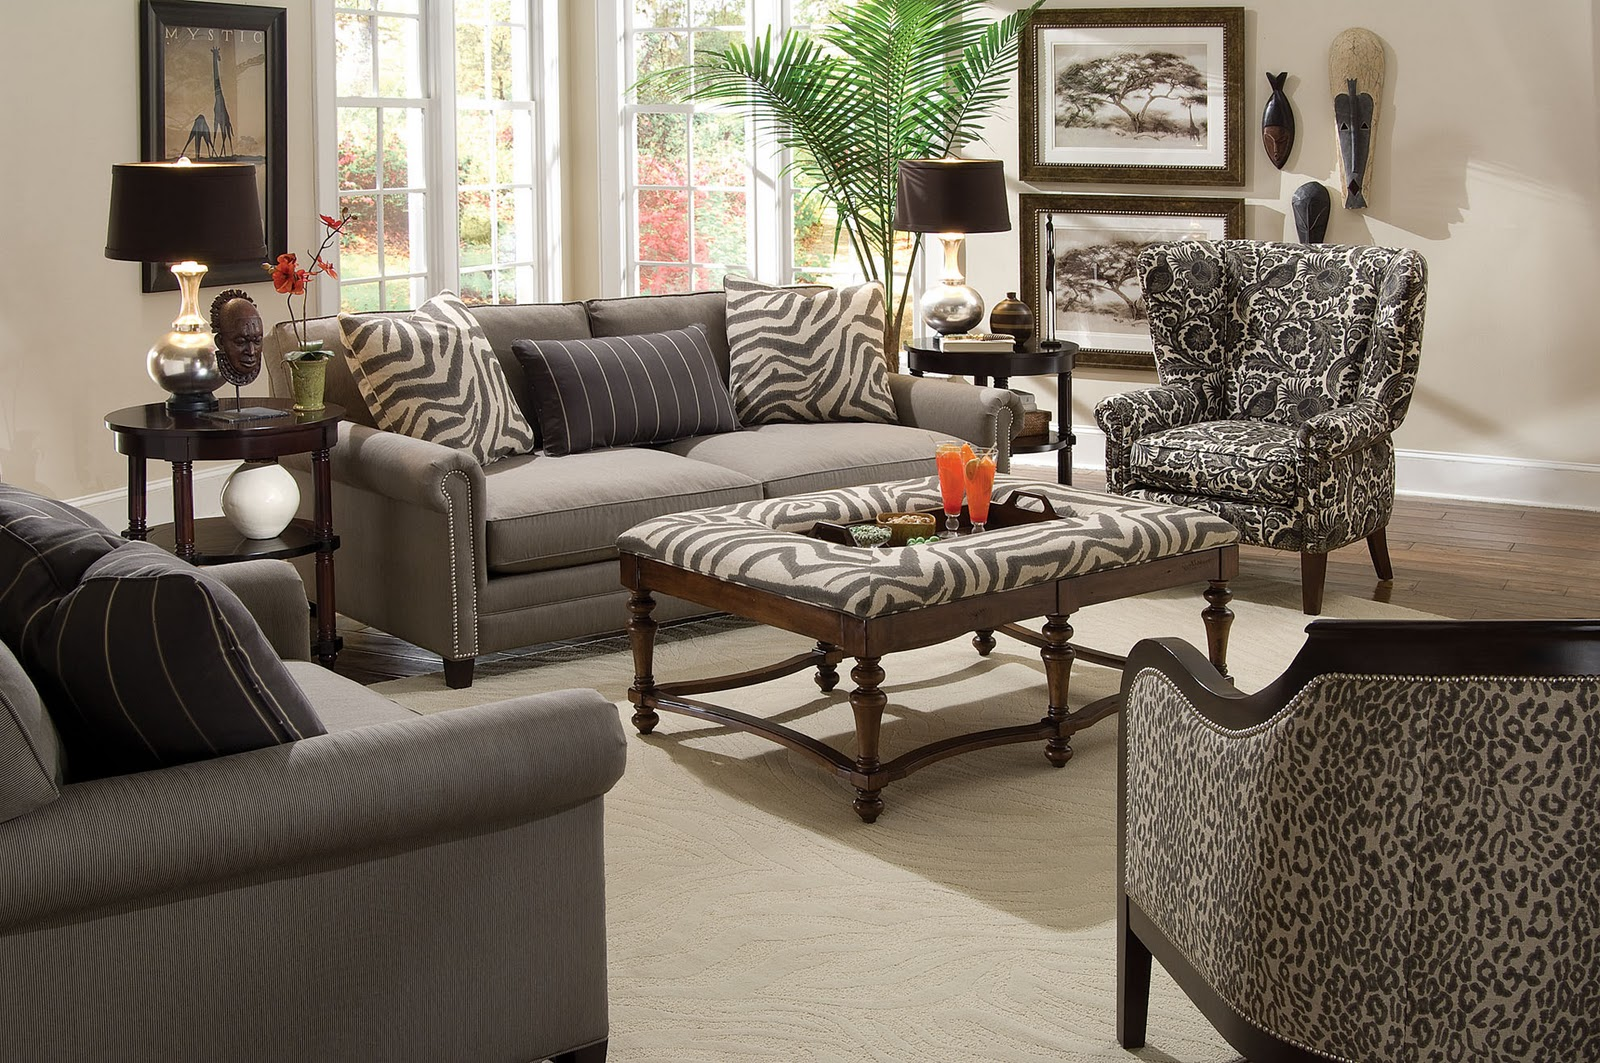 The Reno Man: New Home, New Furniture Styles 2012 on Furniture Style  id=21252